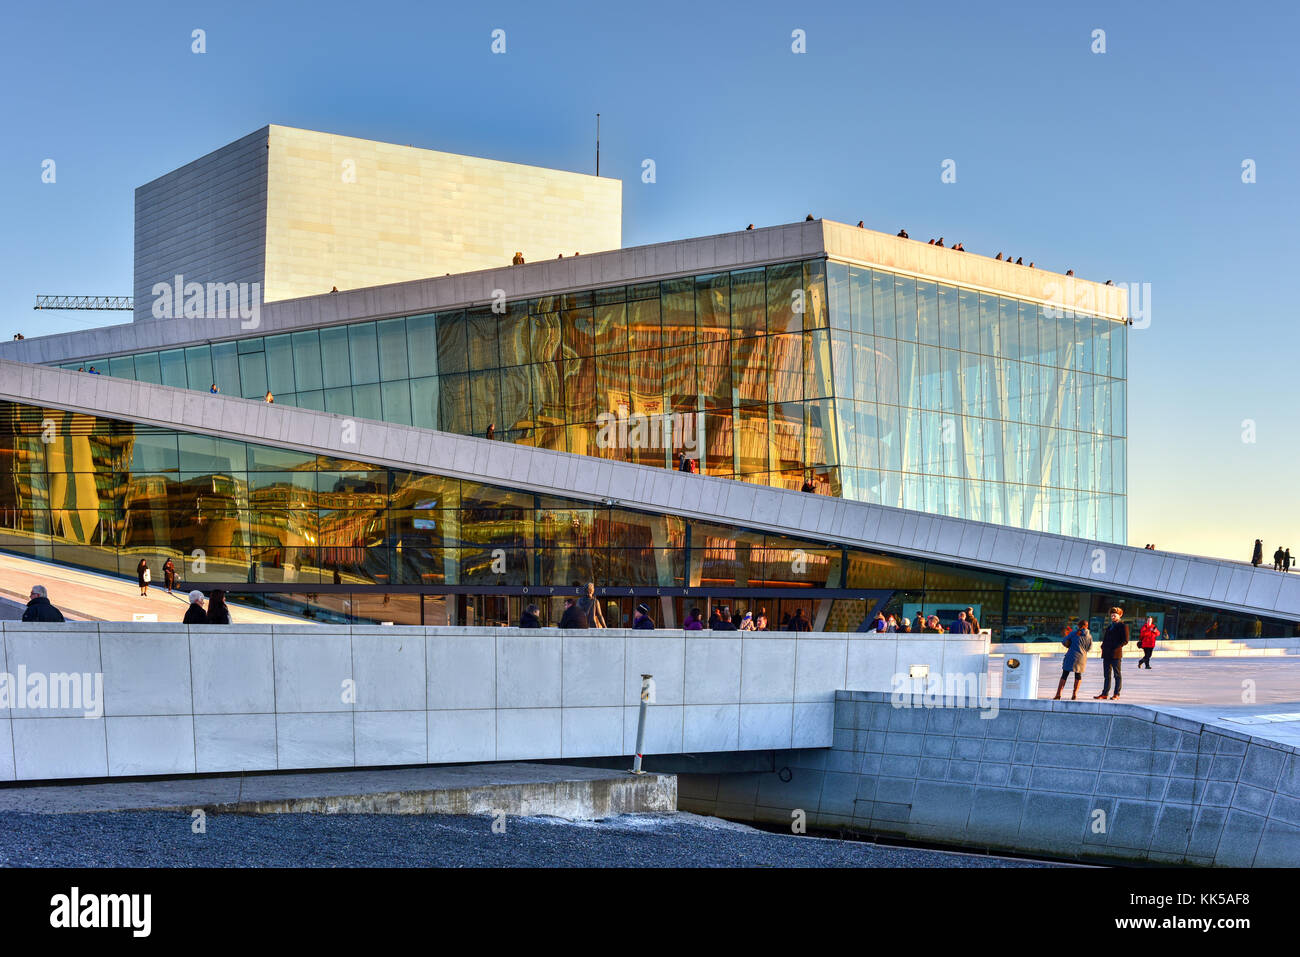 Oslo, Norway   February 27, 2016: The Oslo Opera House, Home Of The  Norwegian National Opera And Ballet And The National Opera Theatre. It Is  Situated Amazing Design